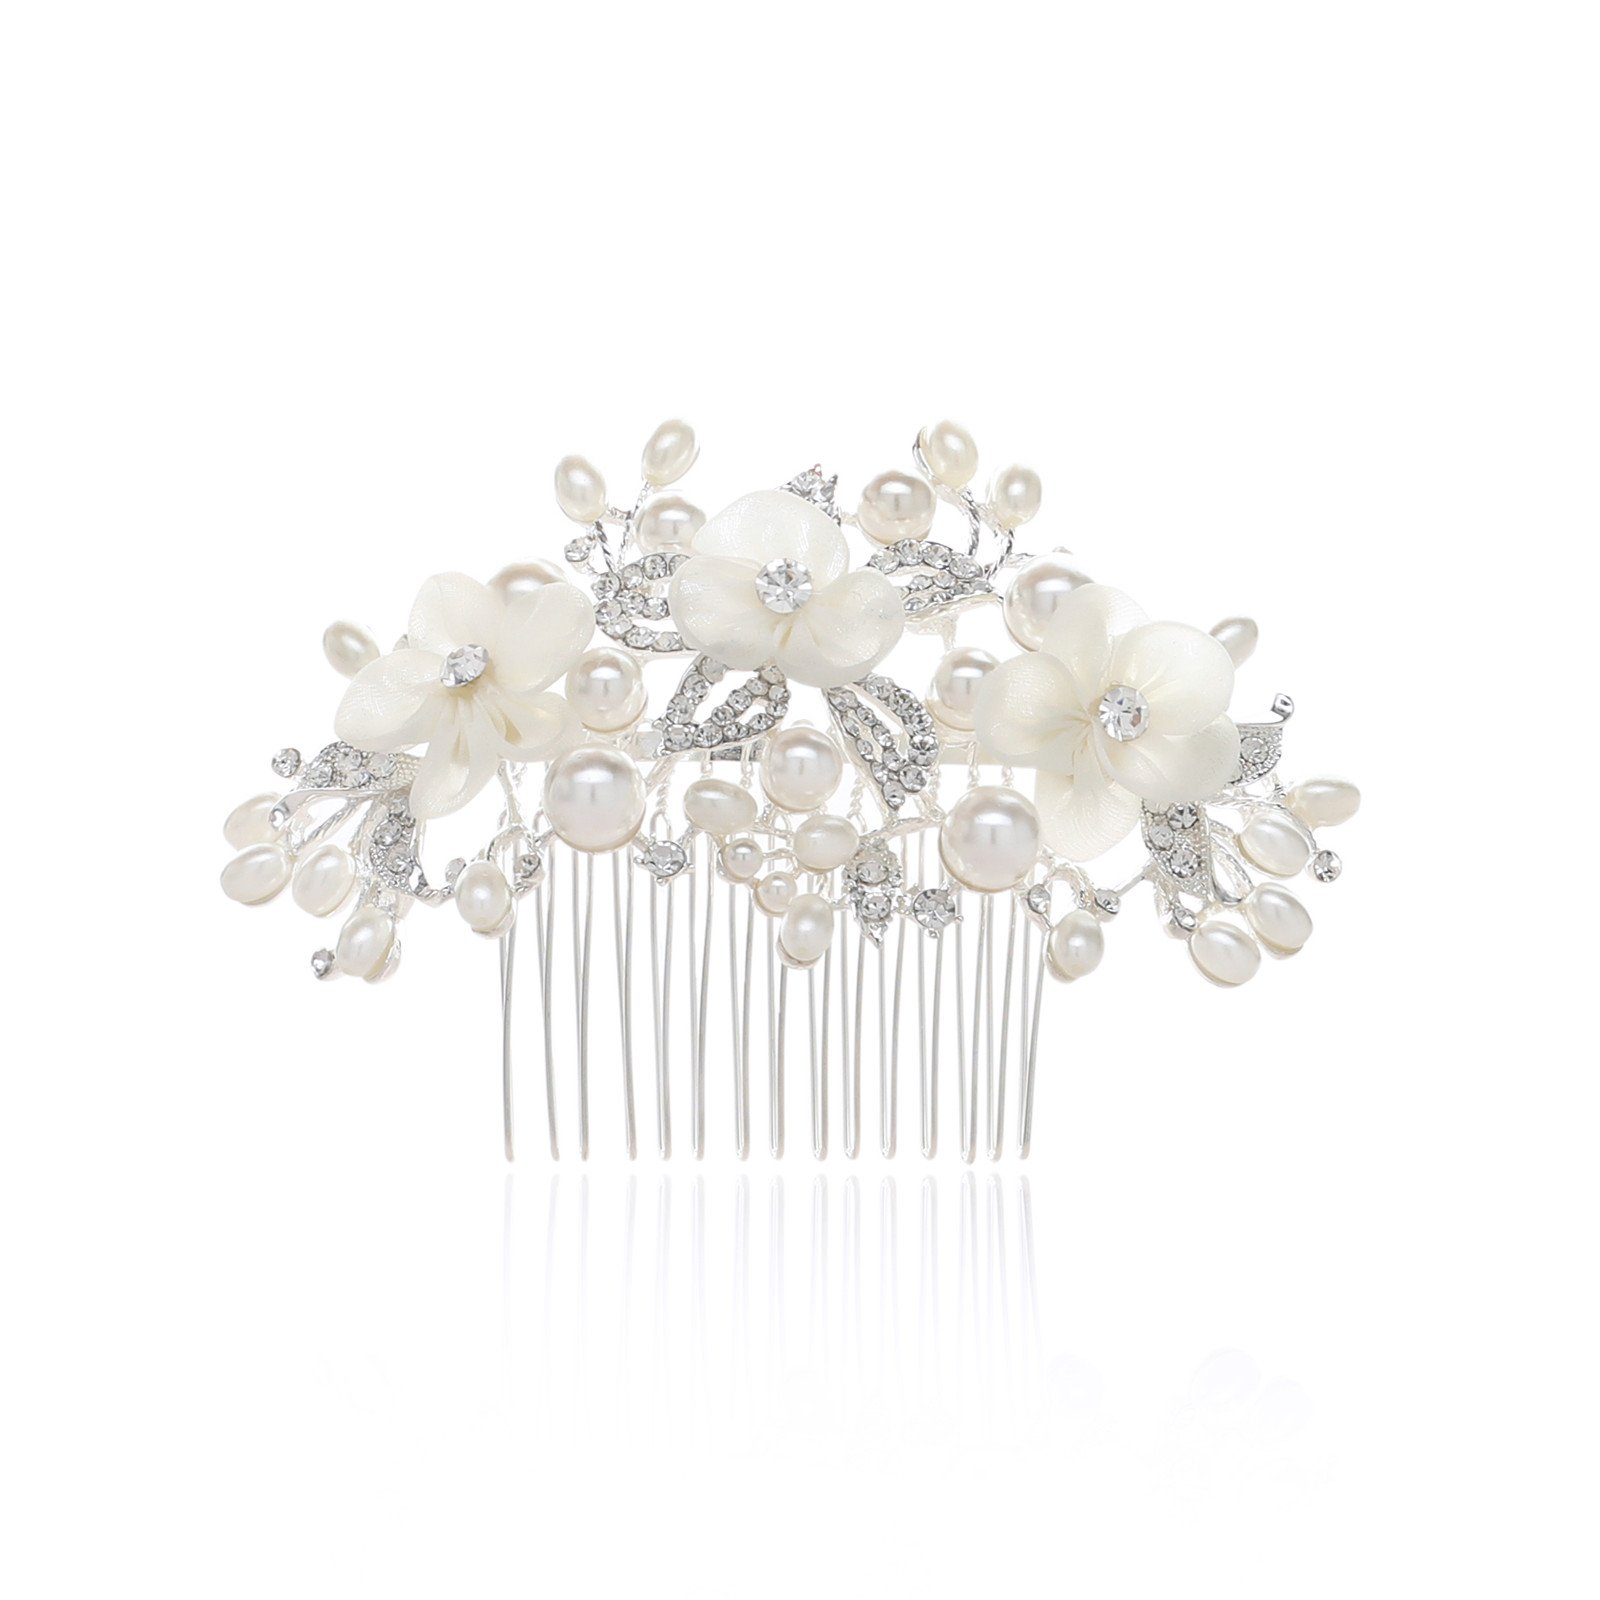 SWEETV Ivory Flower Wedding Hair Comb Pearl Clip Bridal Headpieces Women Hair Accessories for Brides by SWEETV